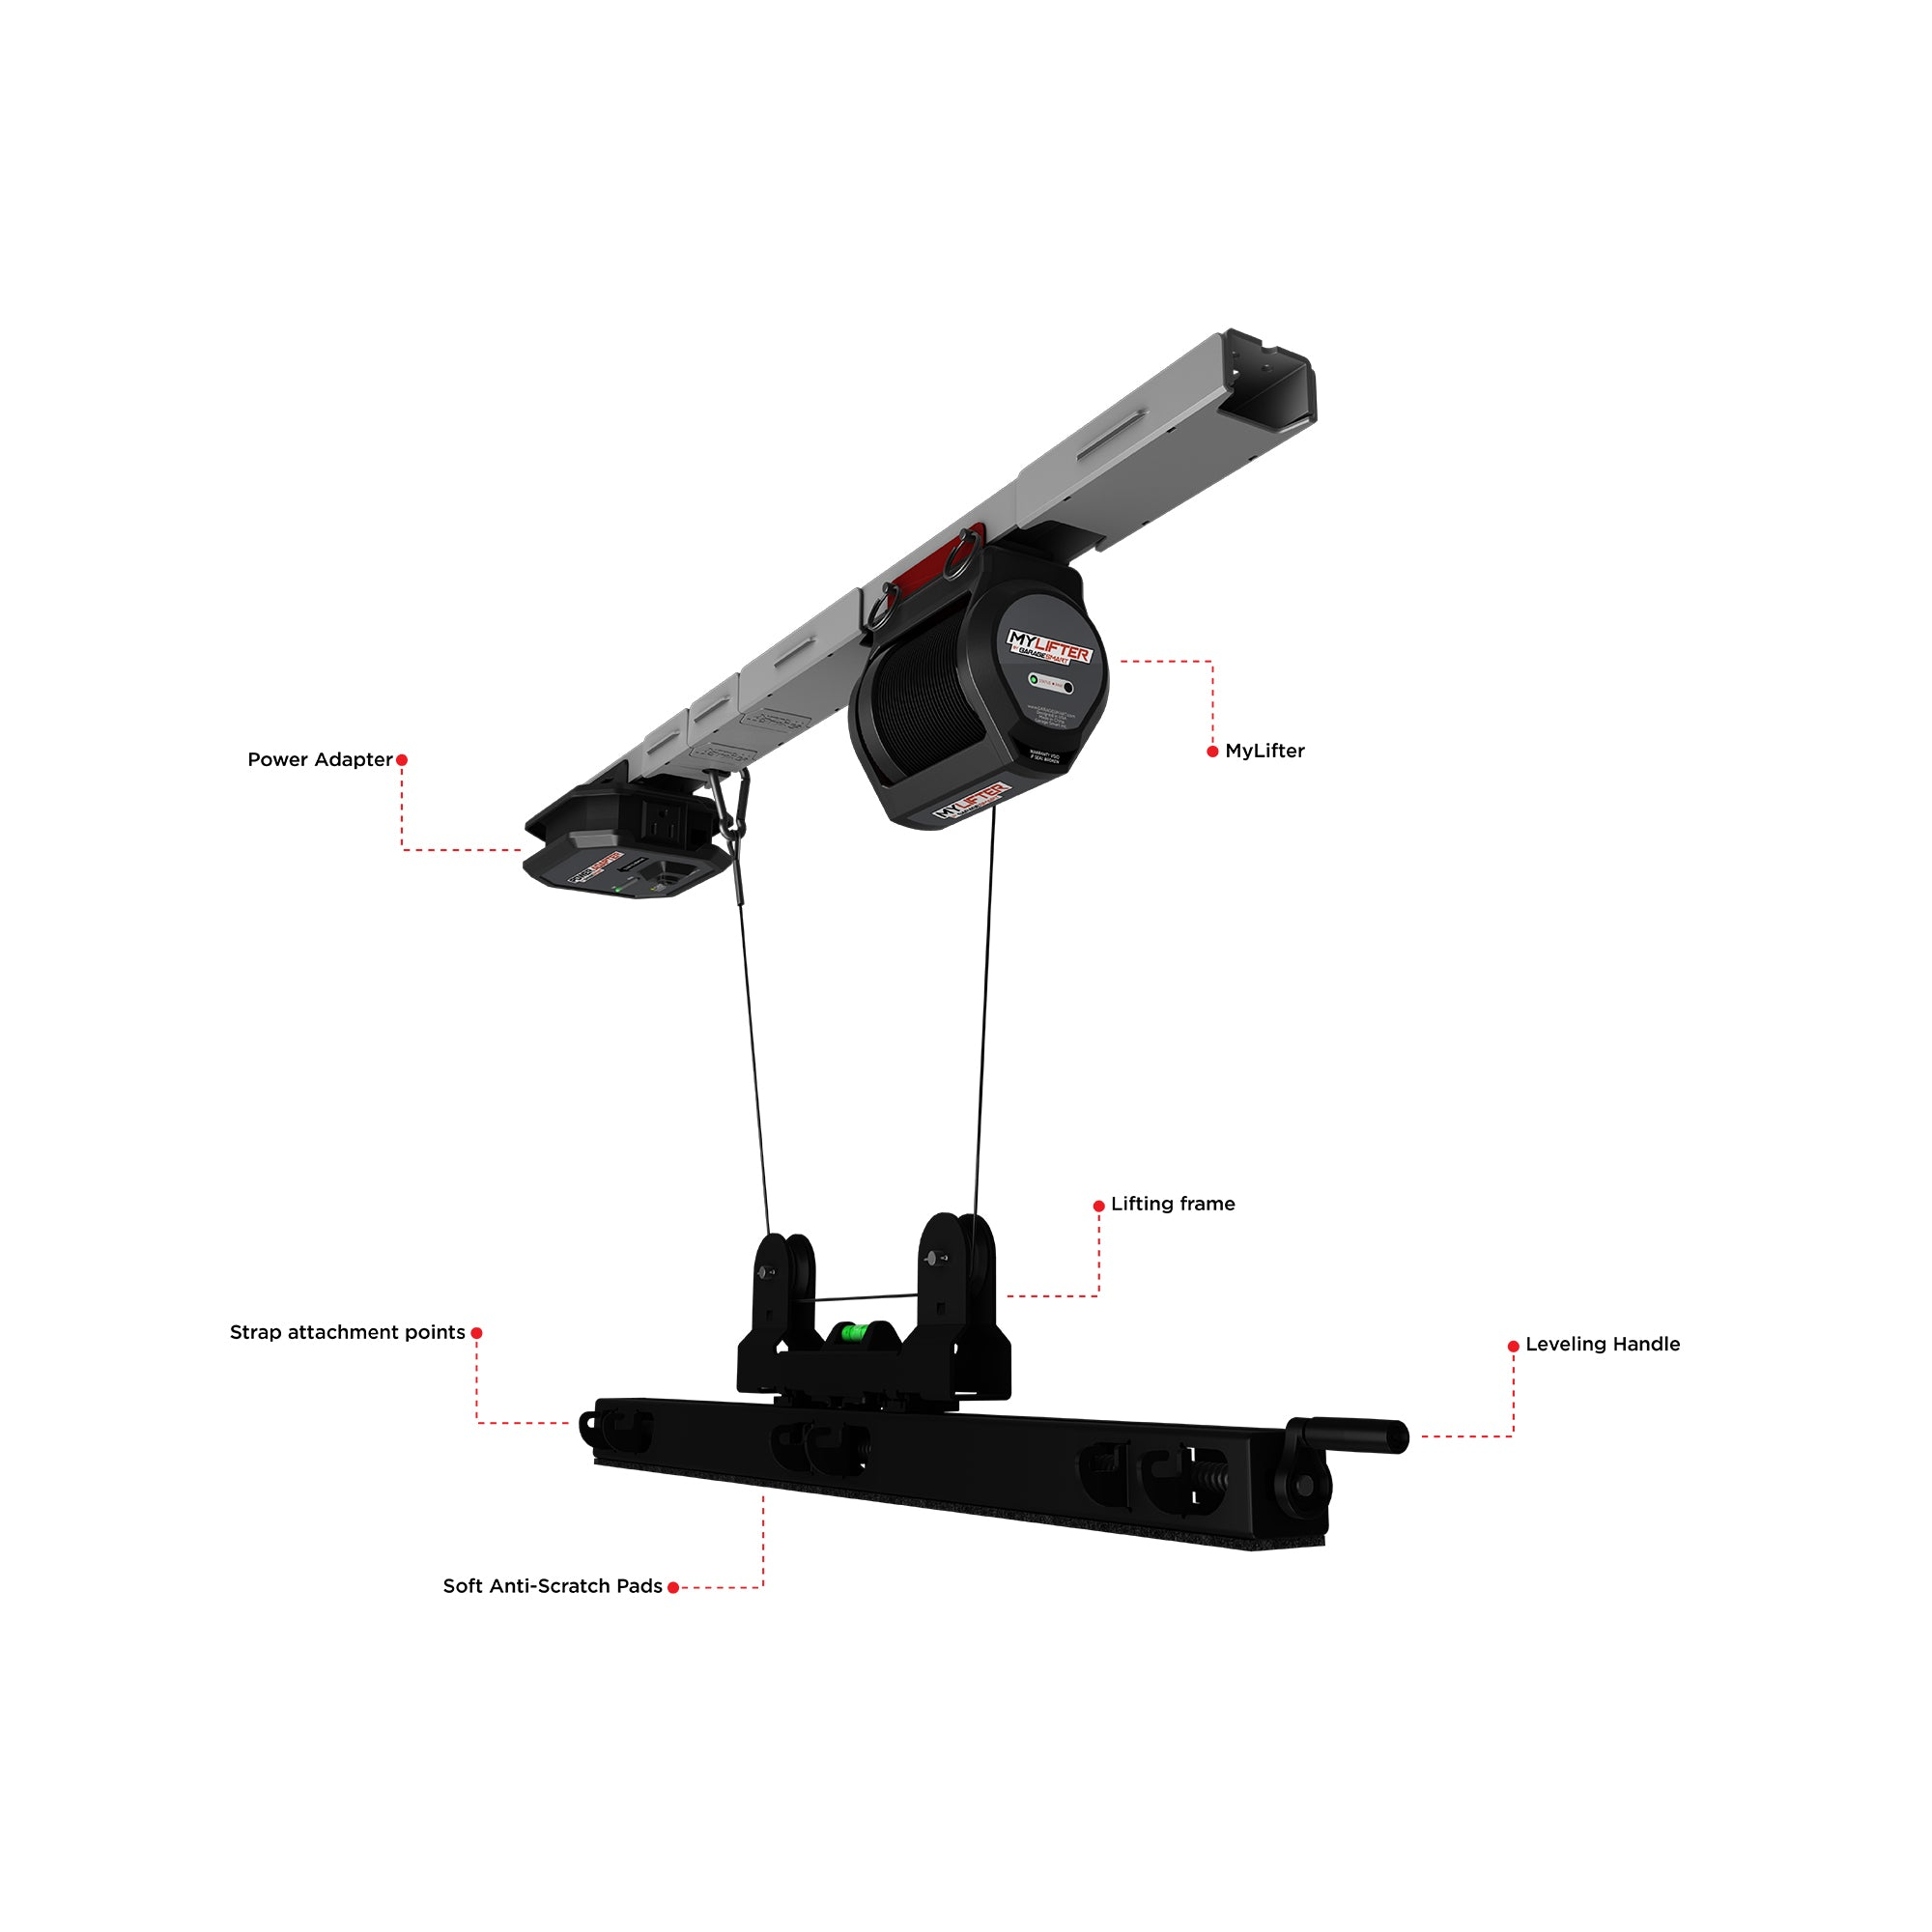 Multi Bike Lifter Features